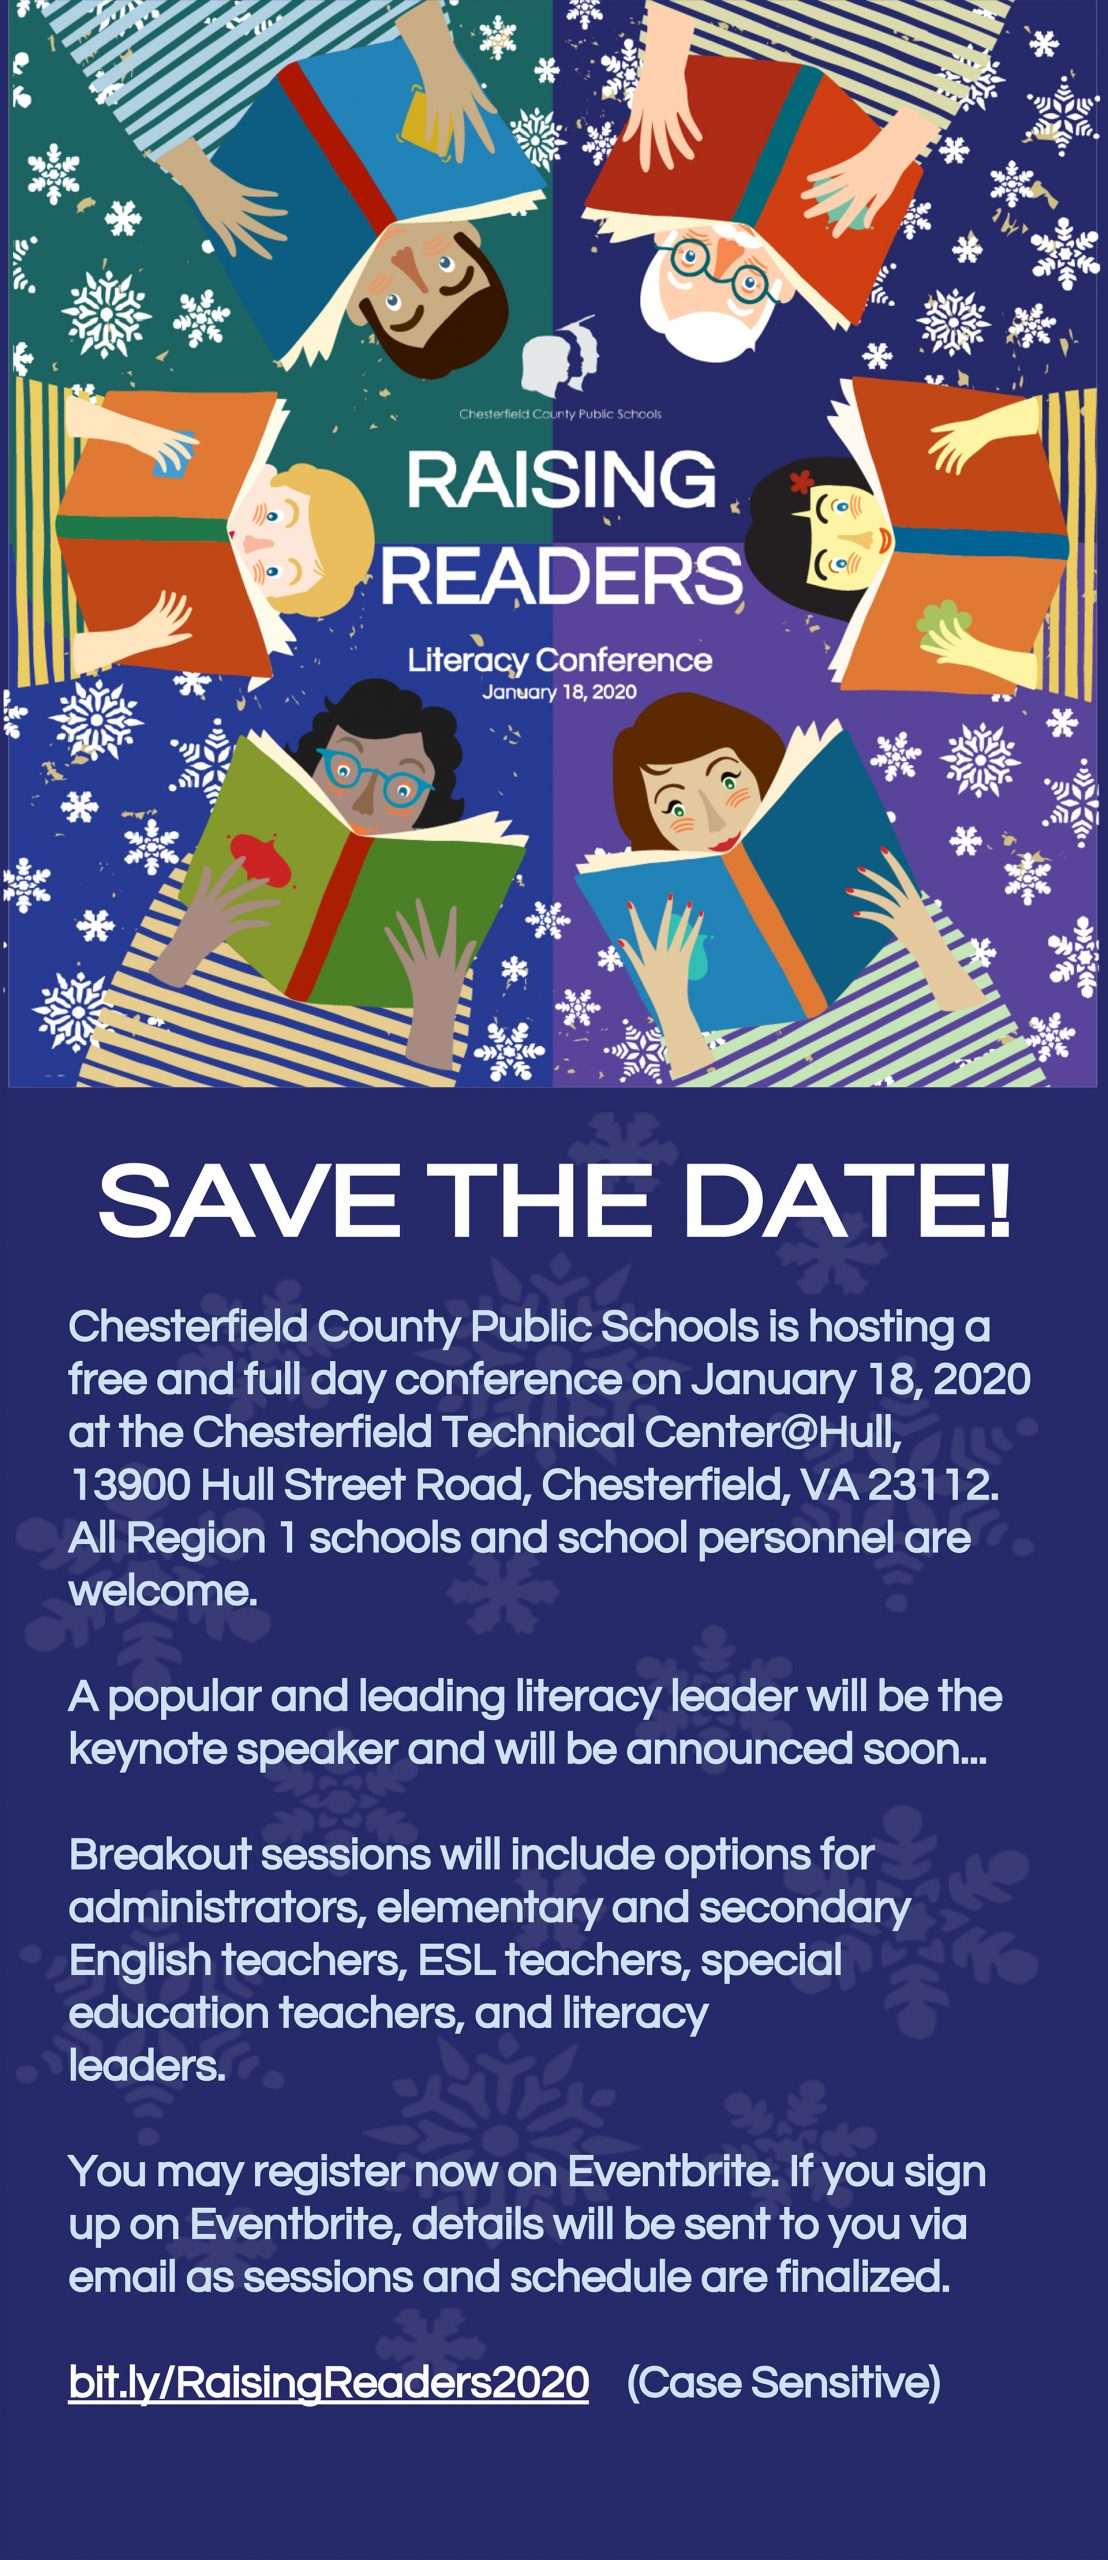 Save the Date - Raising Readers